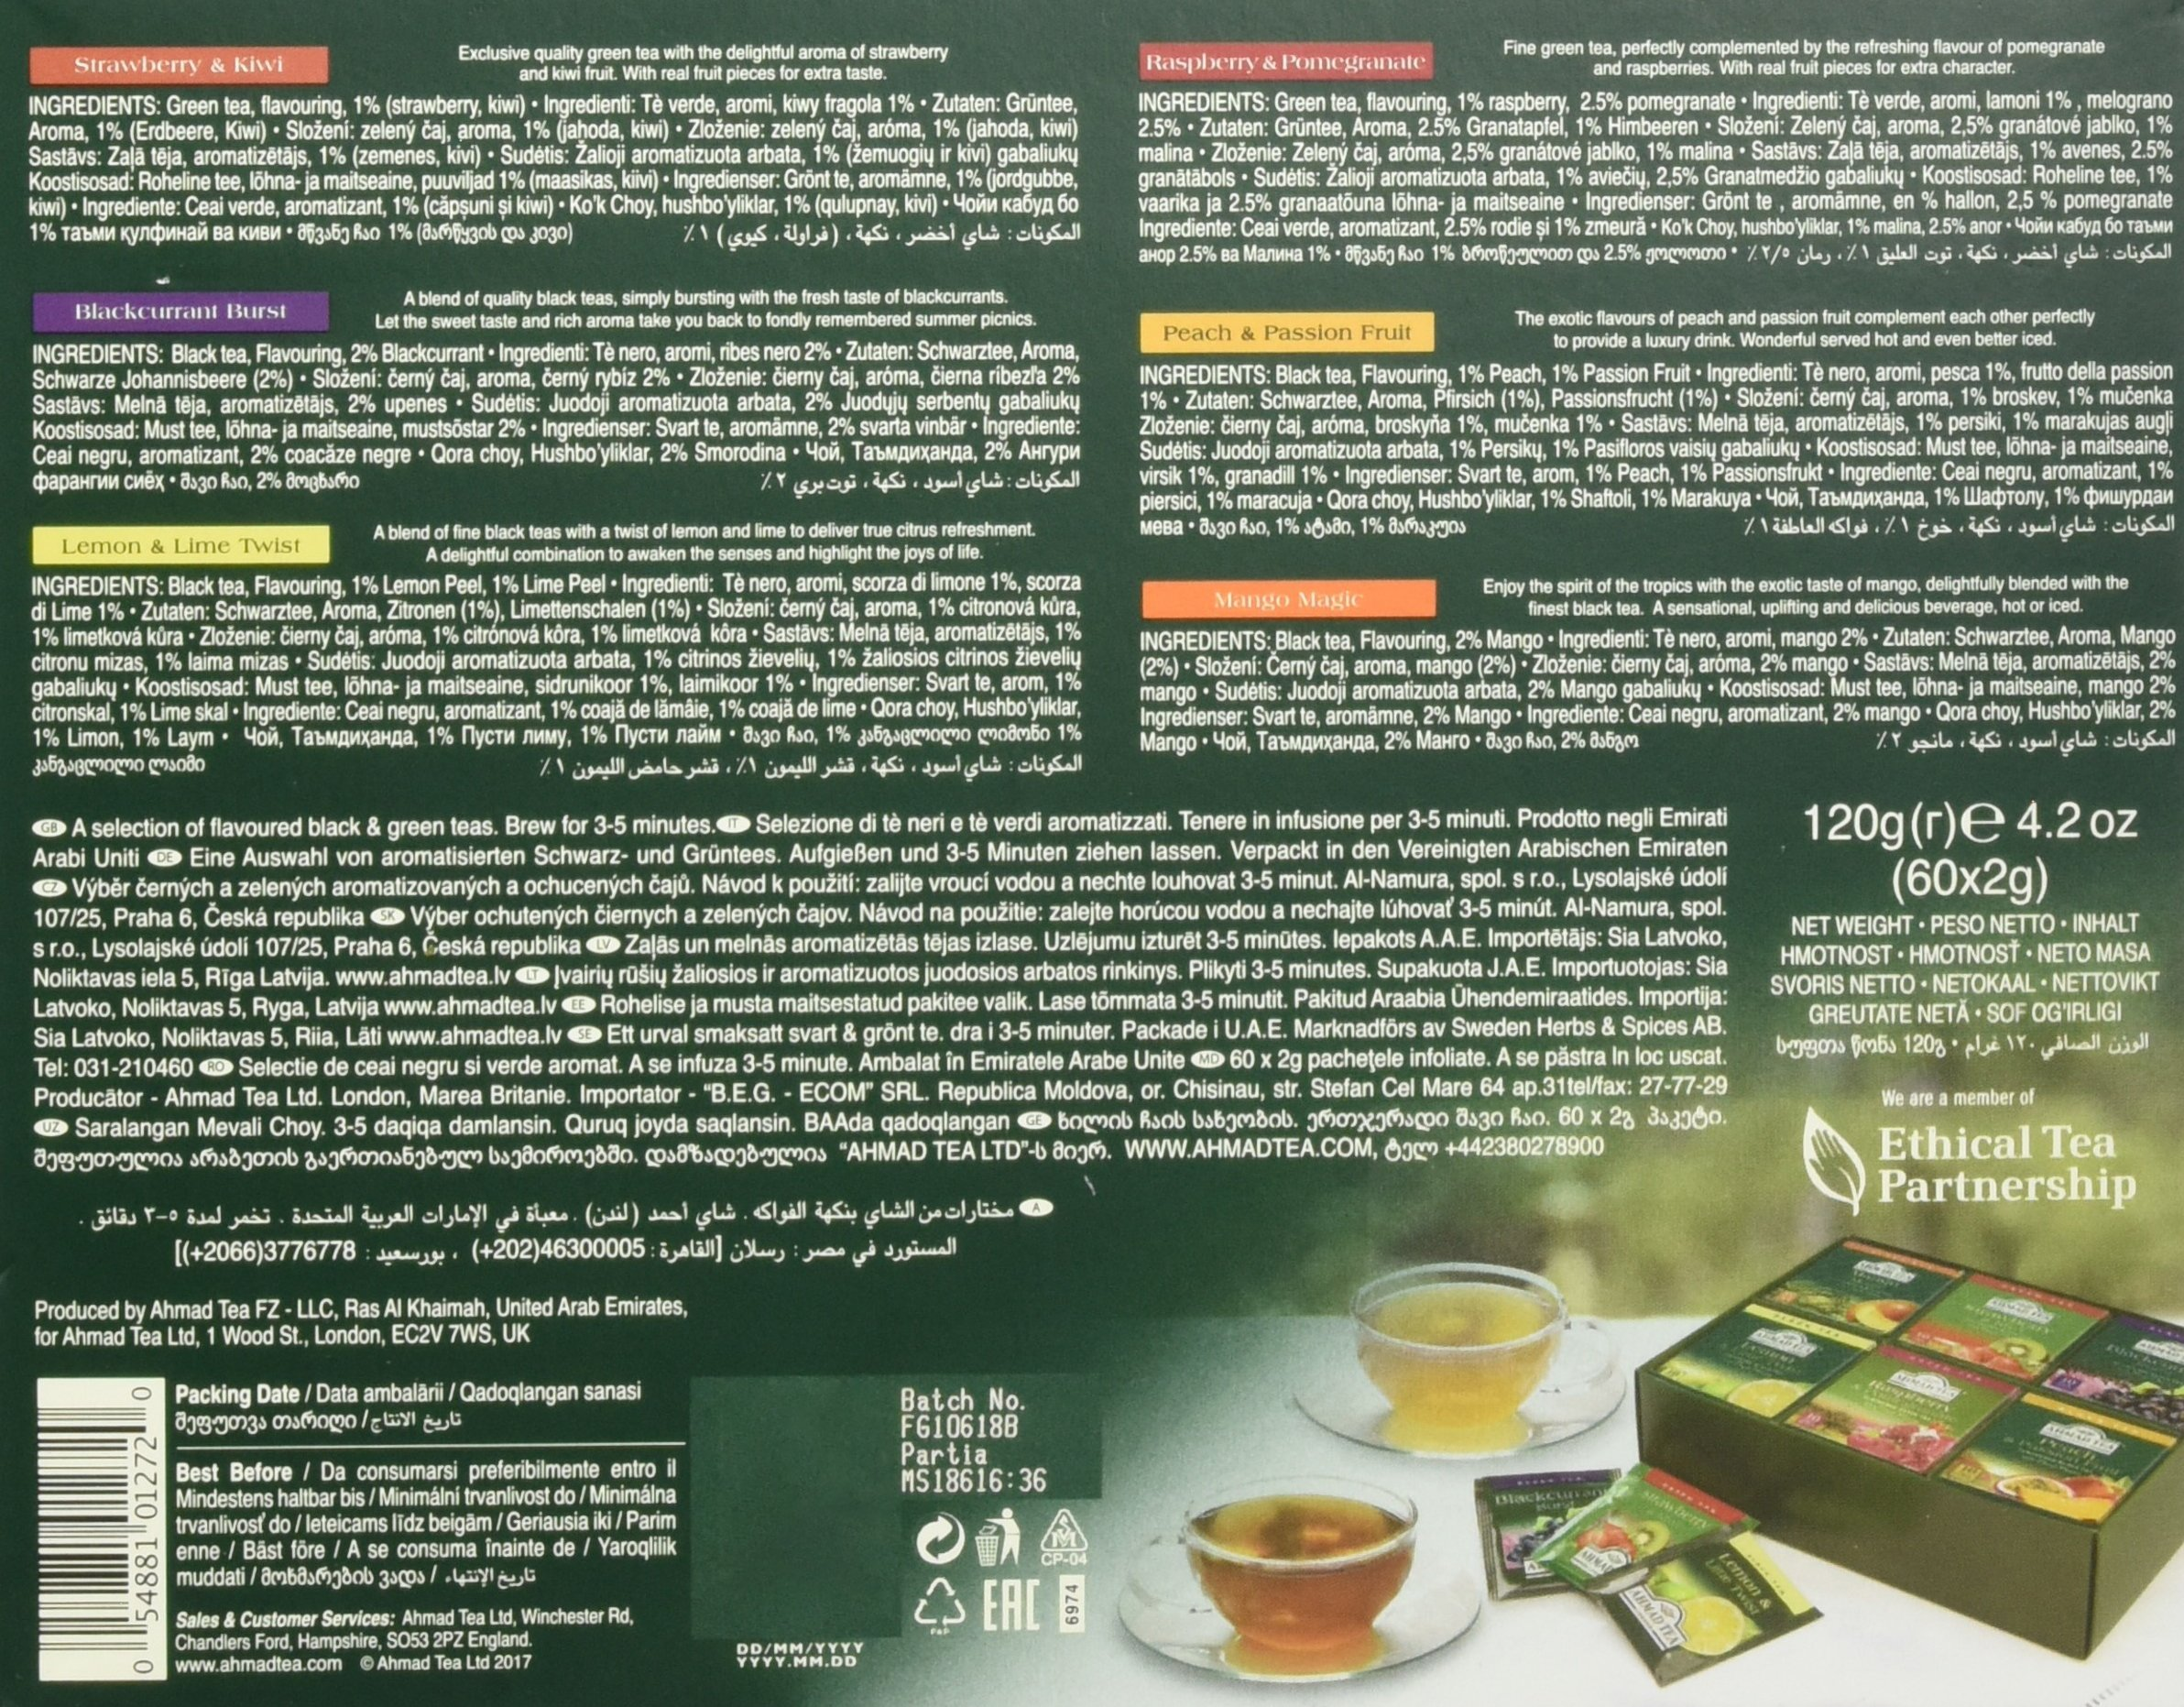 English-Teas-Selection-Pack-Fruitytea-A-Selection-of-Six-Fruit-Flavoured-Teas-6-x-10-Foil-Enveloped-Teabags-1272